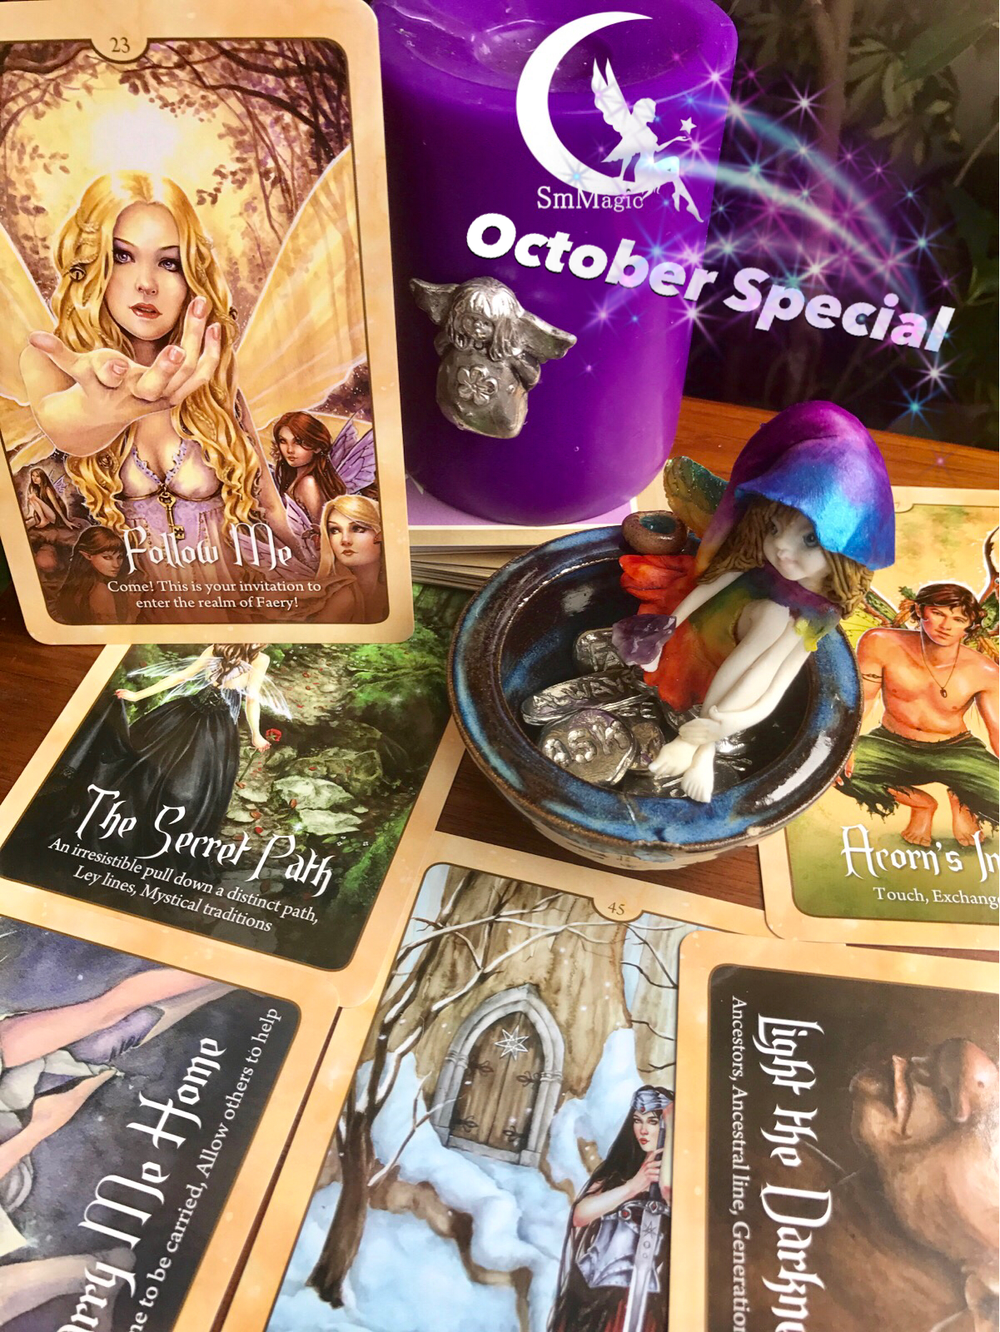 October Special With SmMagic